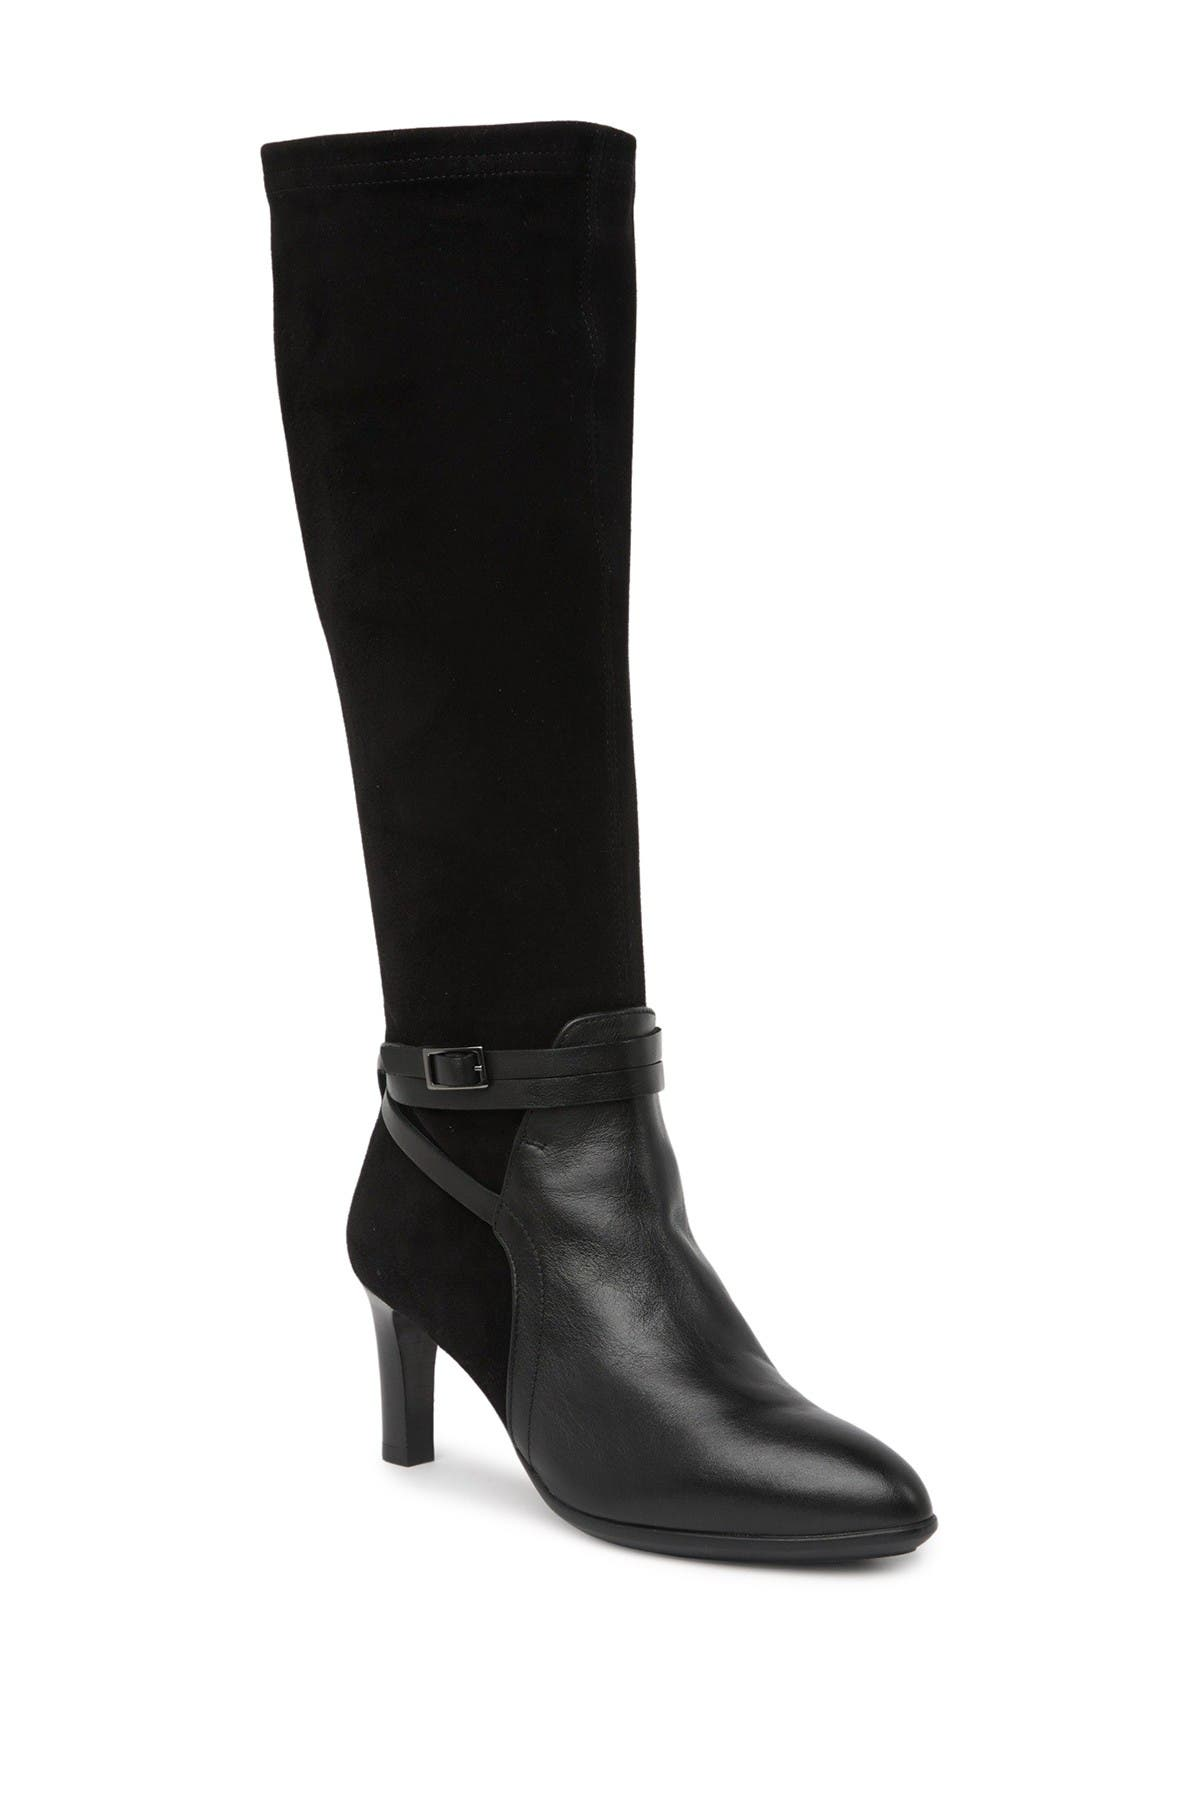 Image of Aquatalia Dayna Buckled Leather Stiletto Boot